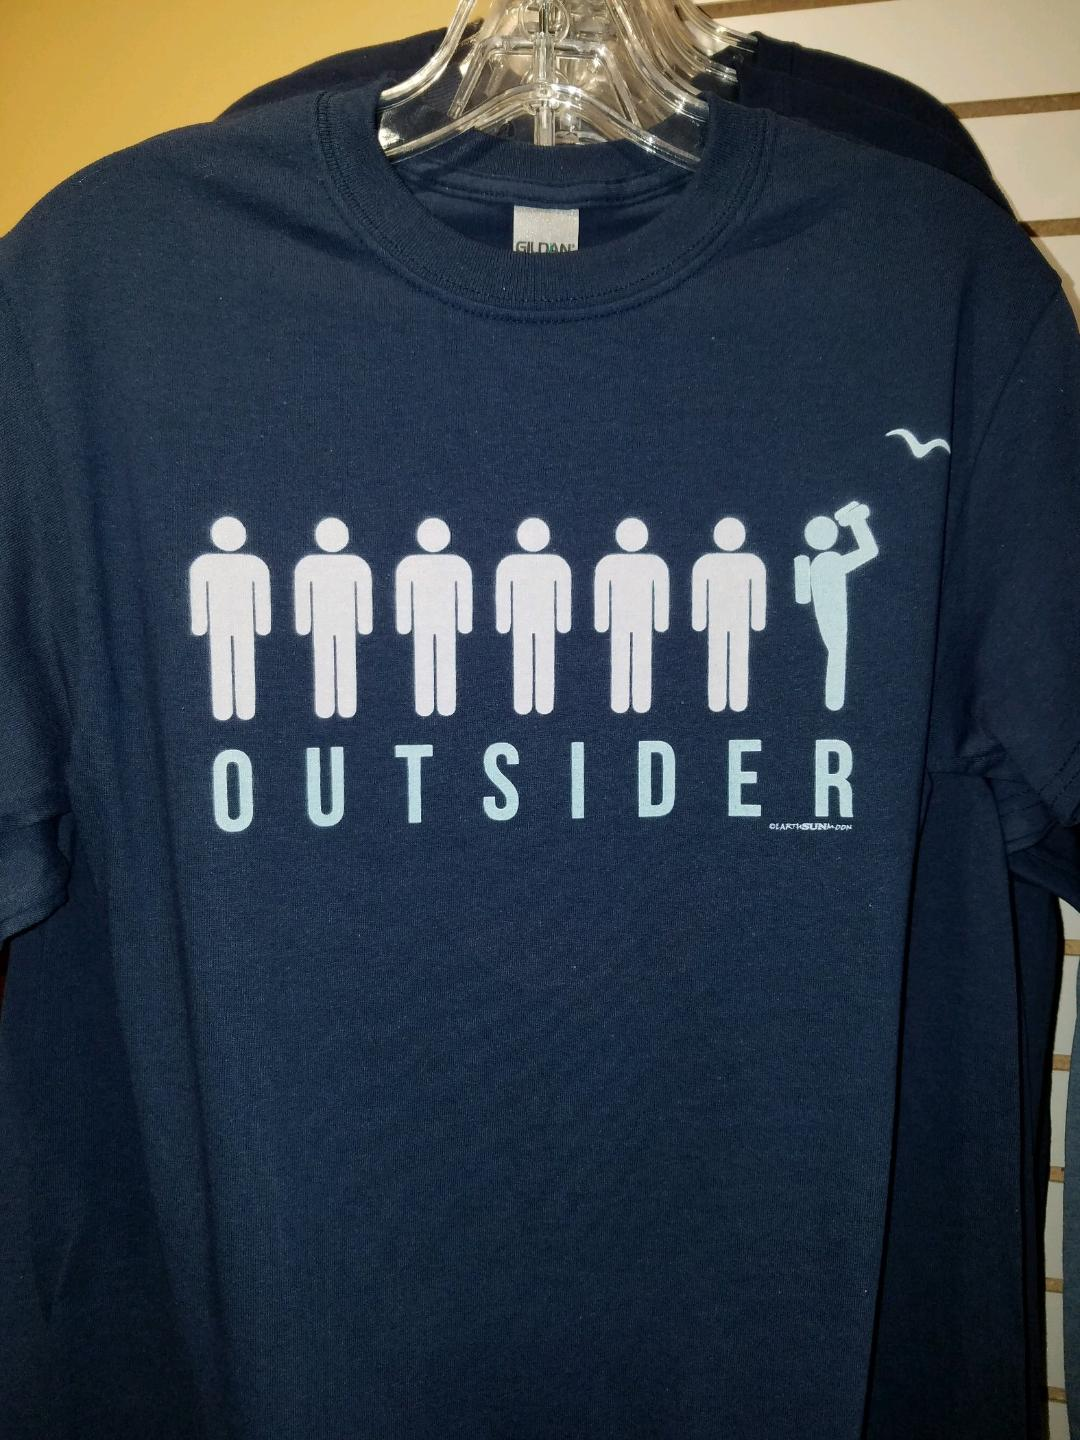 Outsider T-Shirt